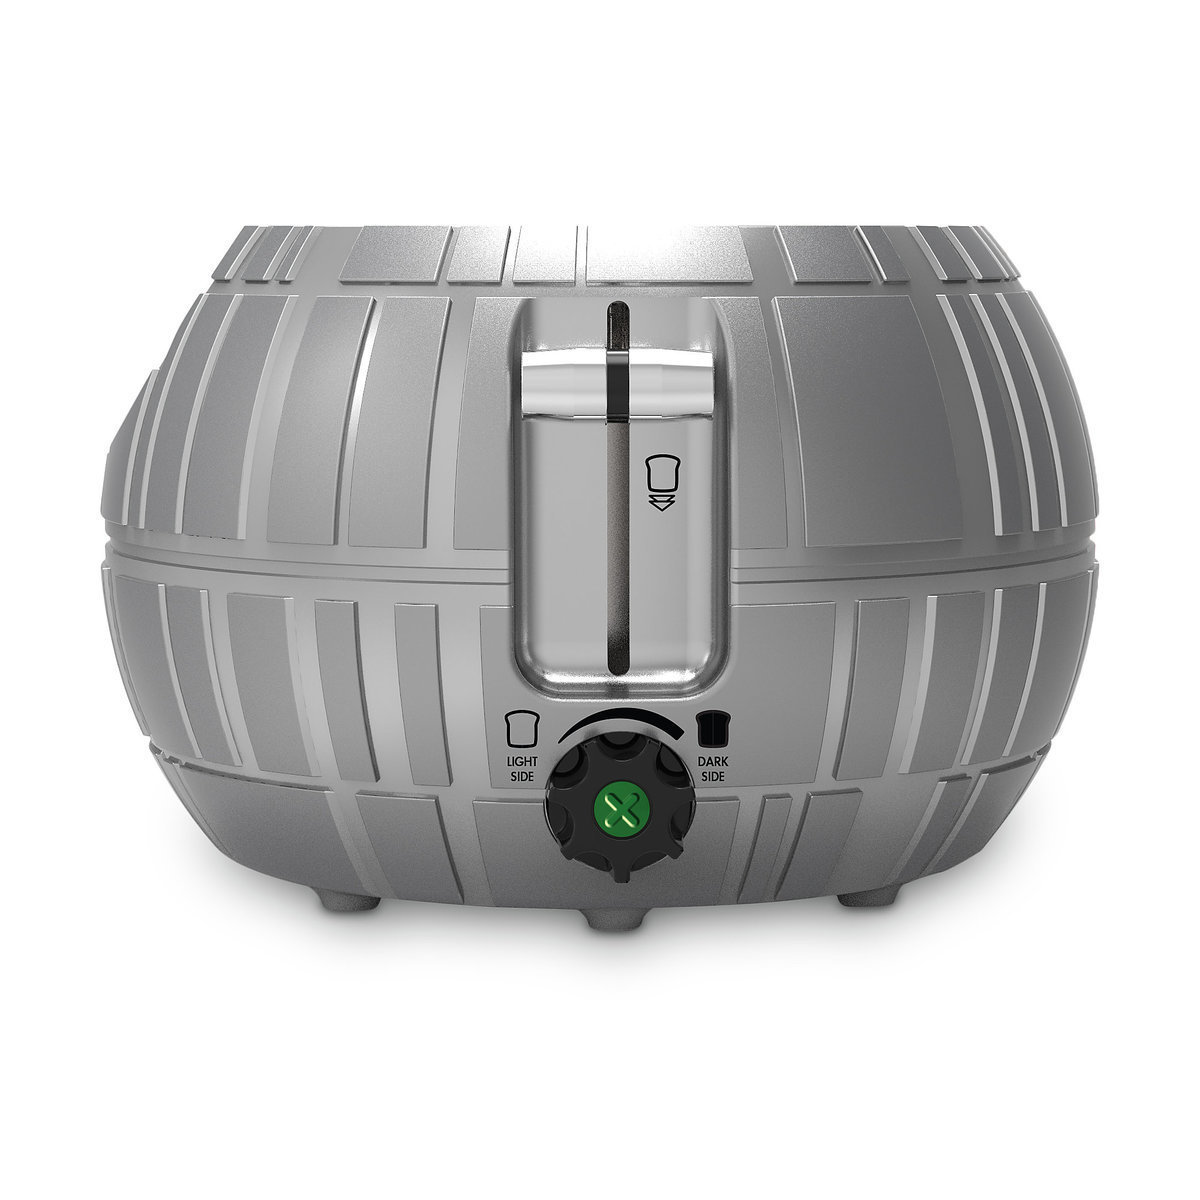 Death Star Toaster - Star Wars